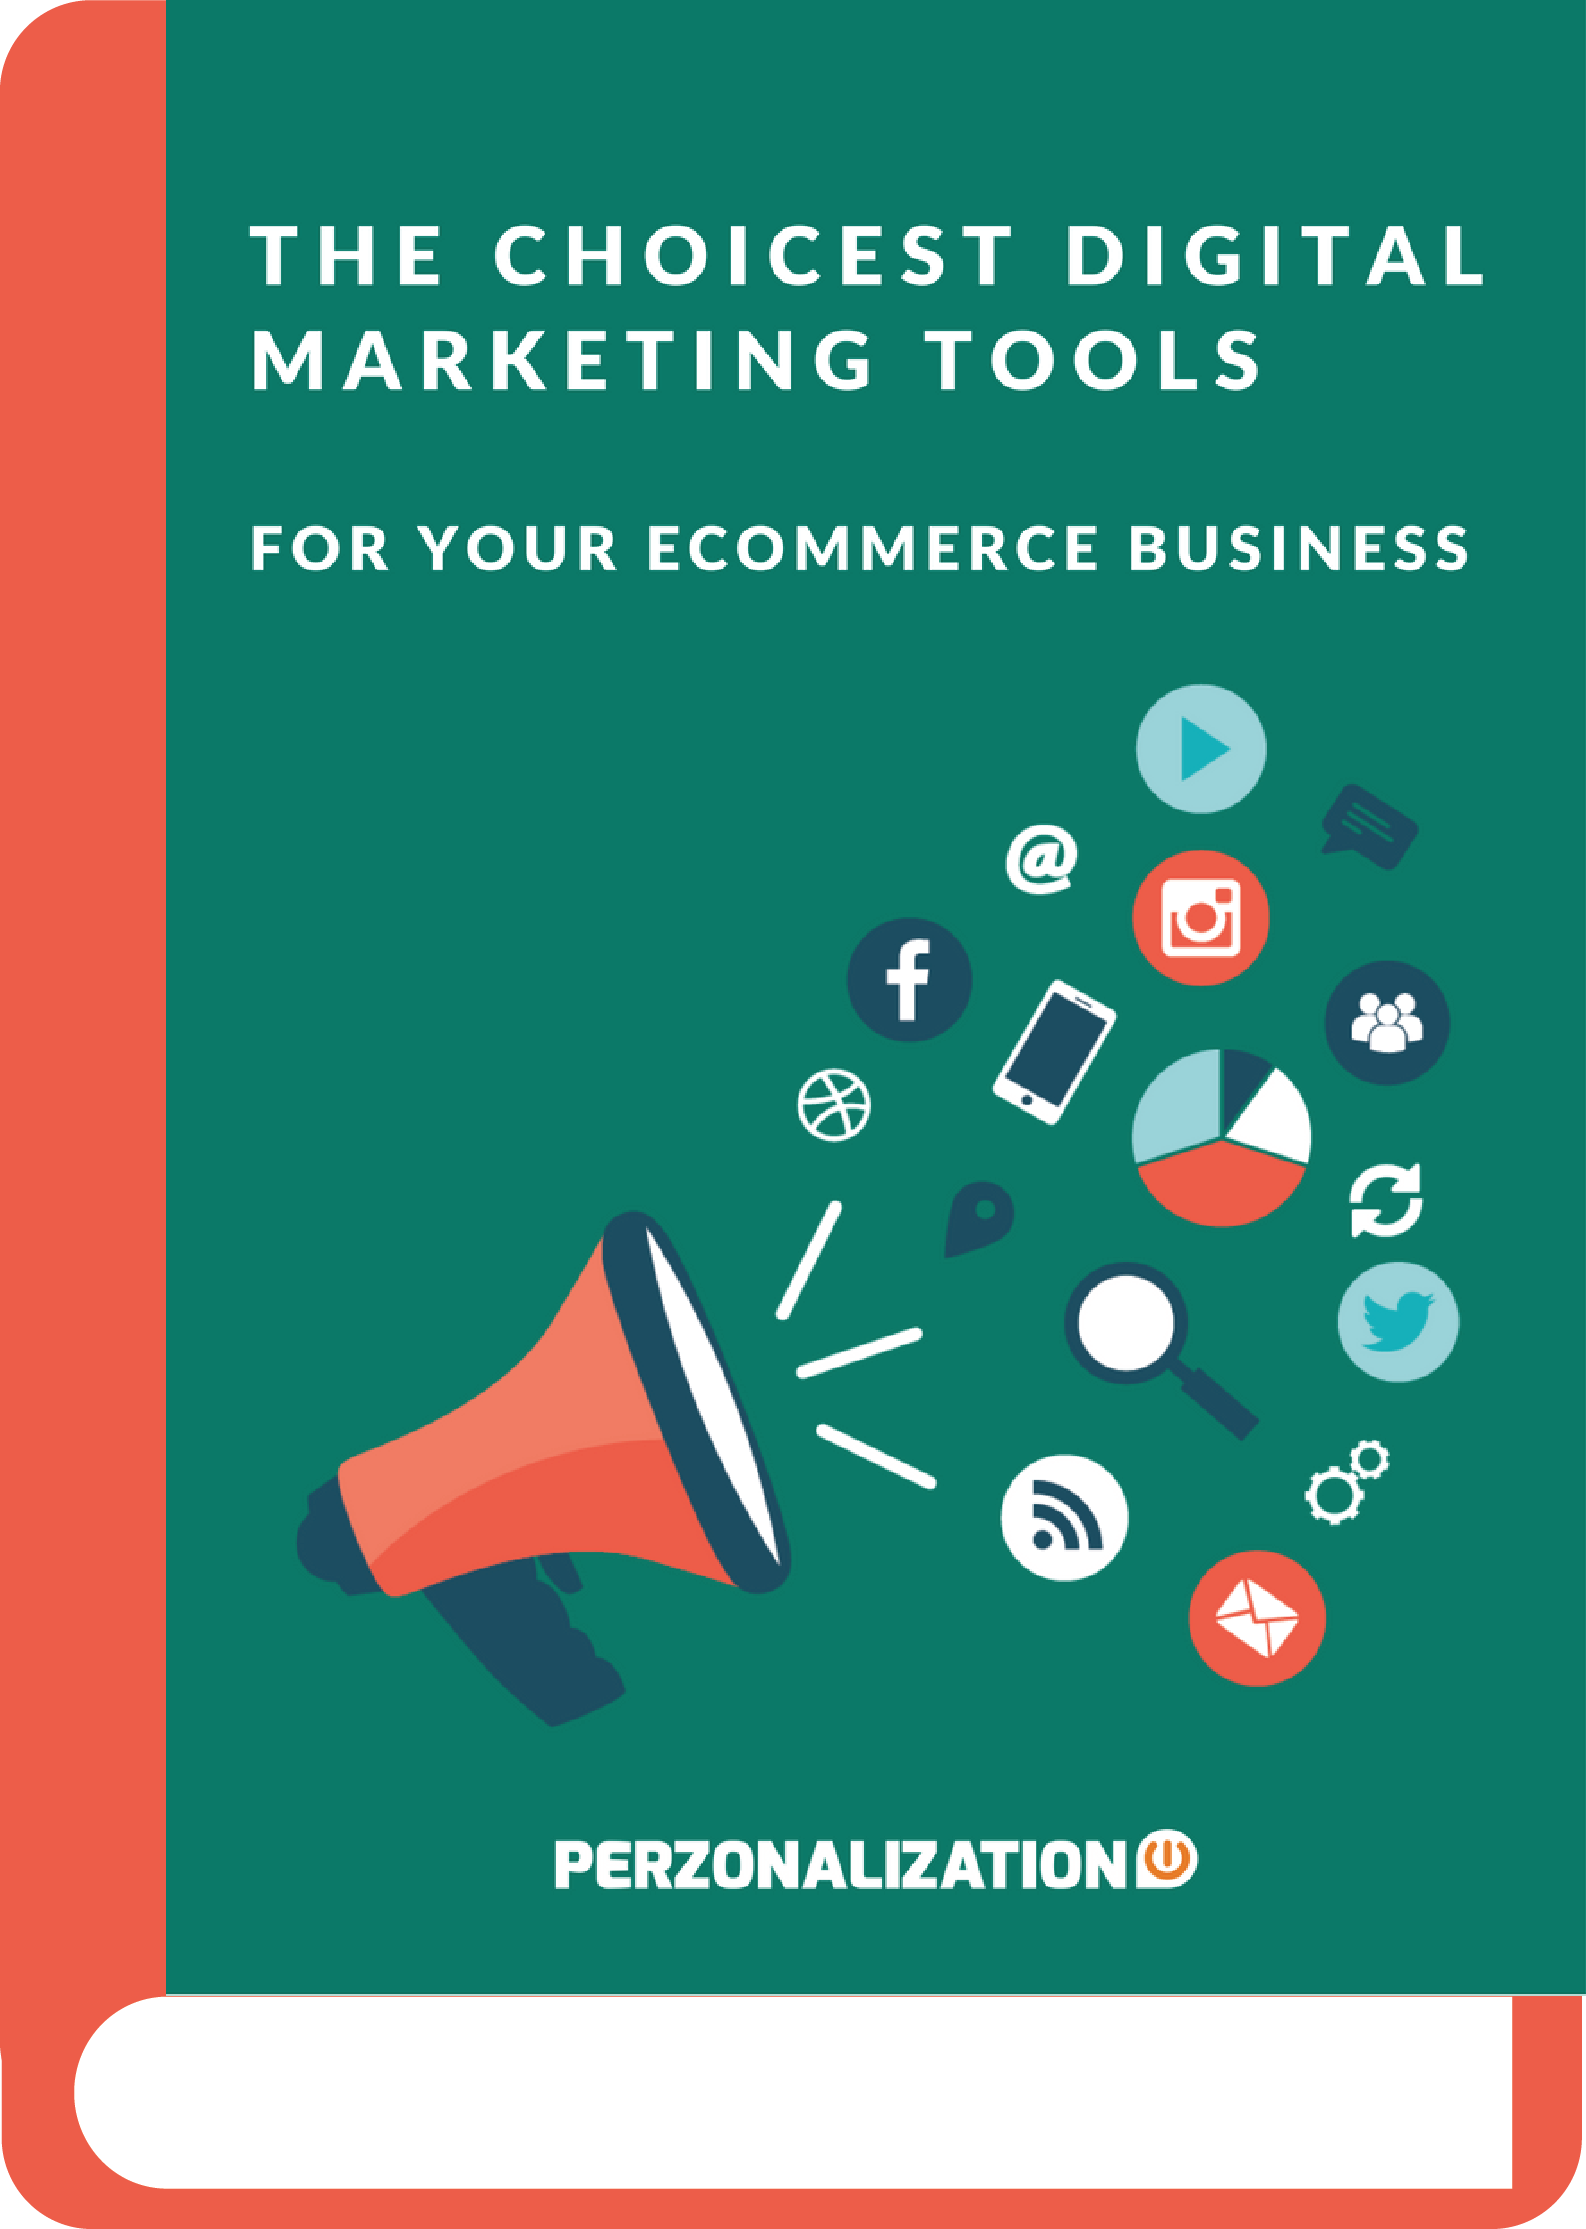 There is no dearth of online digital marketing tools for your eCommerce website these days. Here's our pick of the 5 best tools for eCommerce marketing.